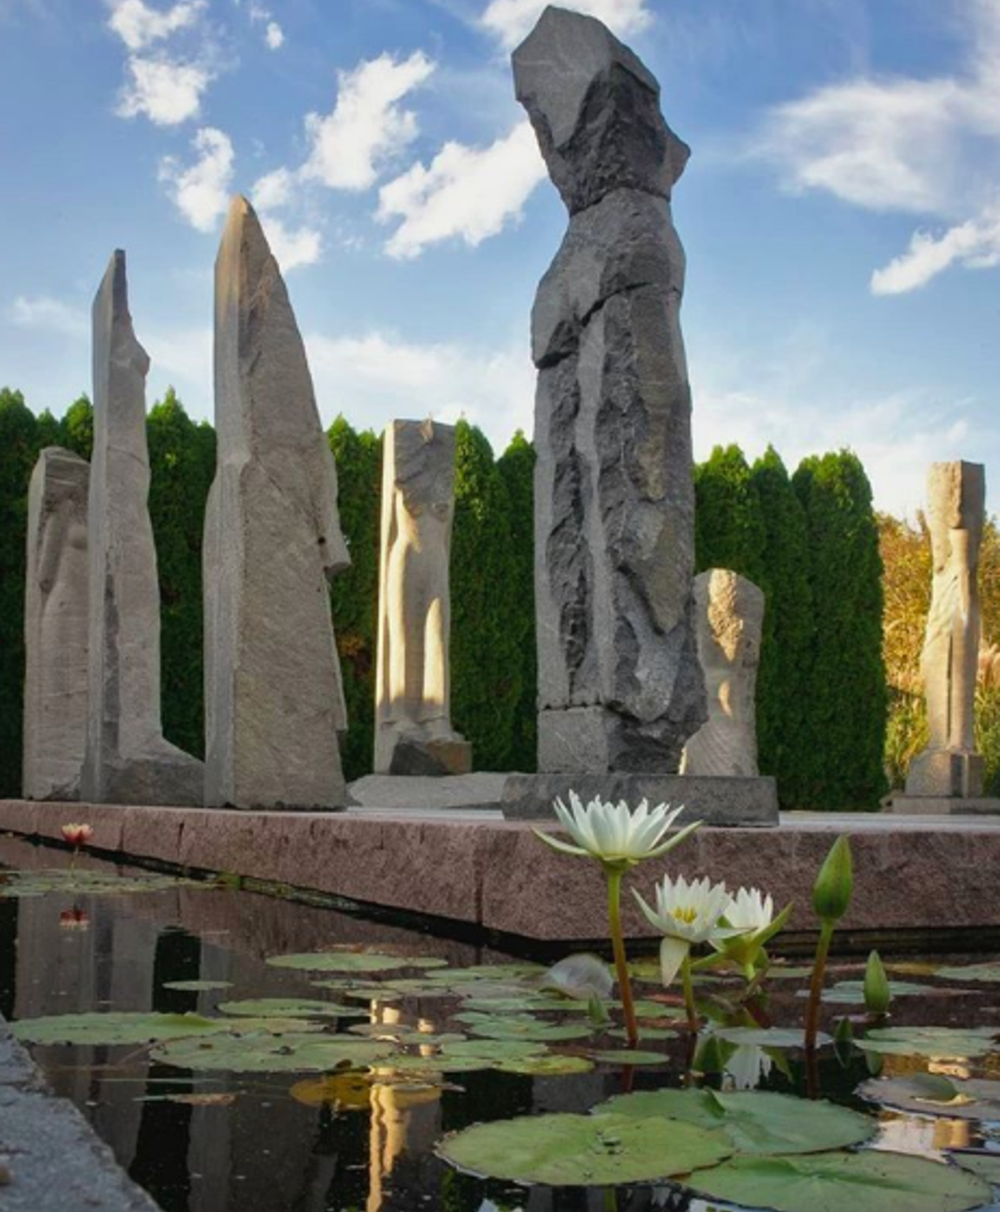 A pond with large monolithic sculptures at the center